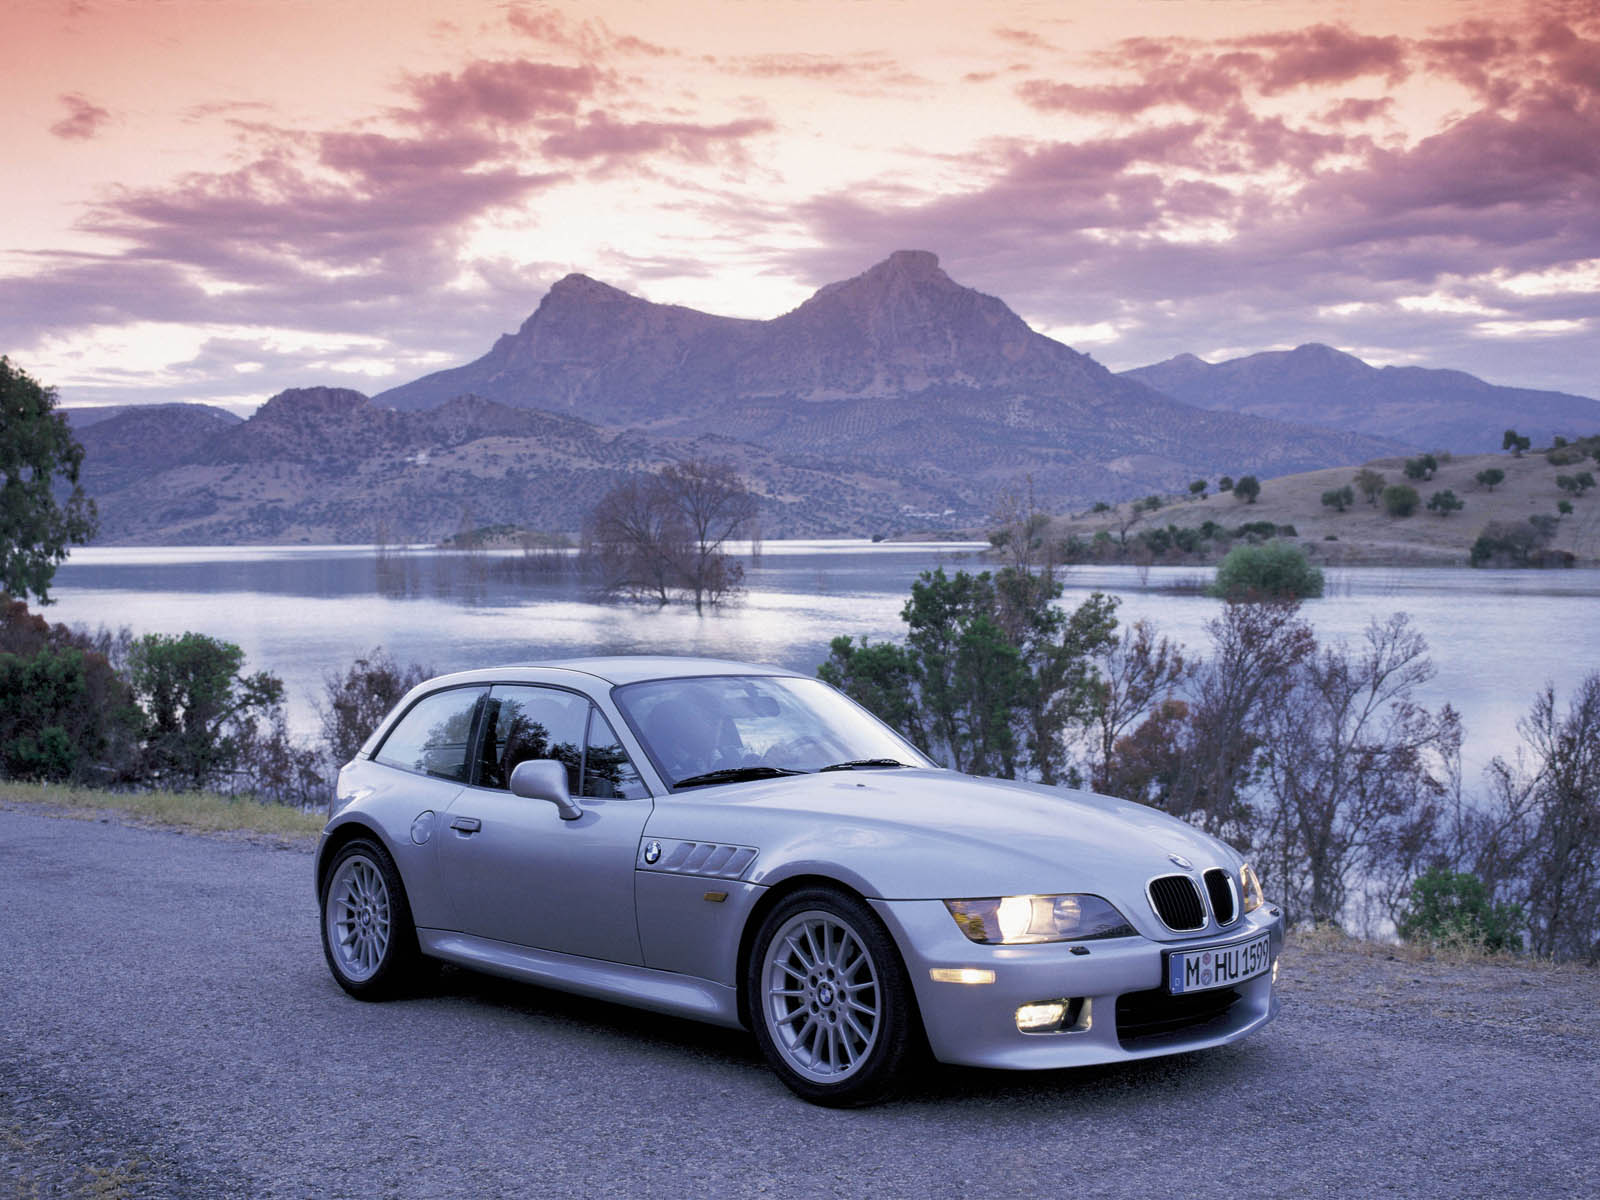 BMW Z3 Coupe Car High Resolution Wallpaper Free